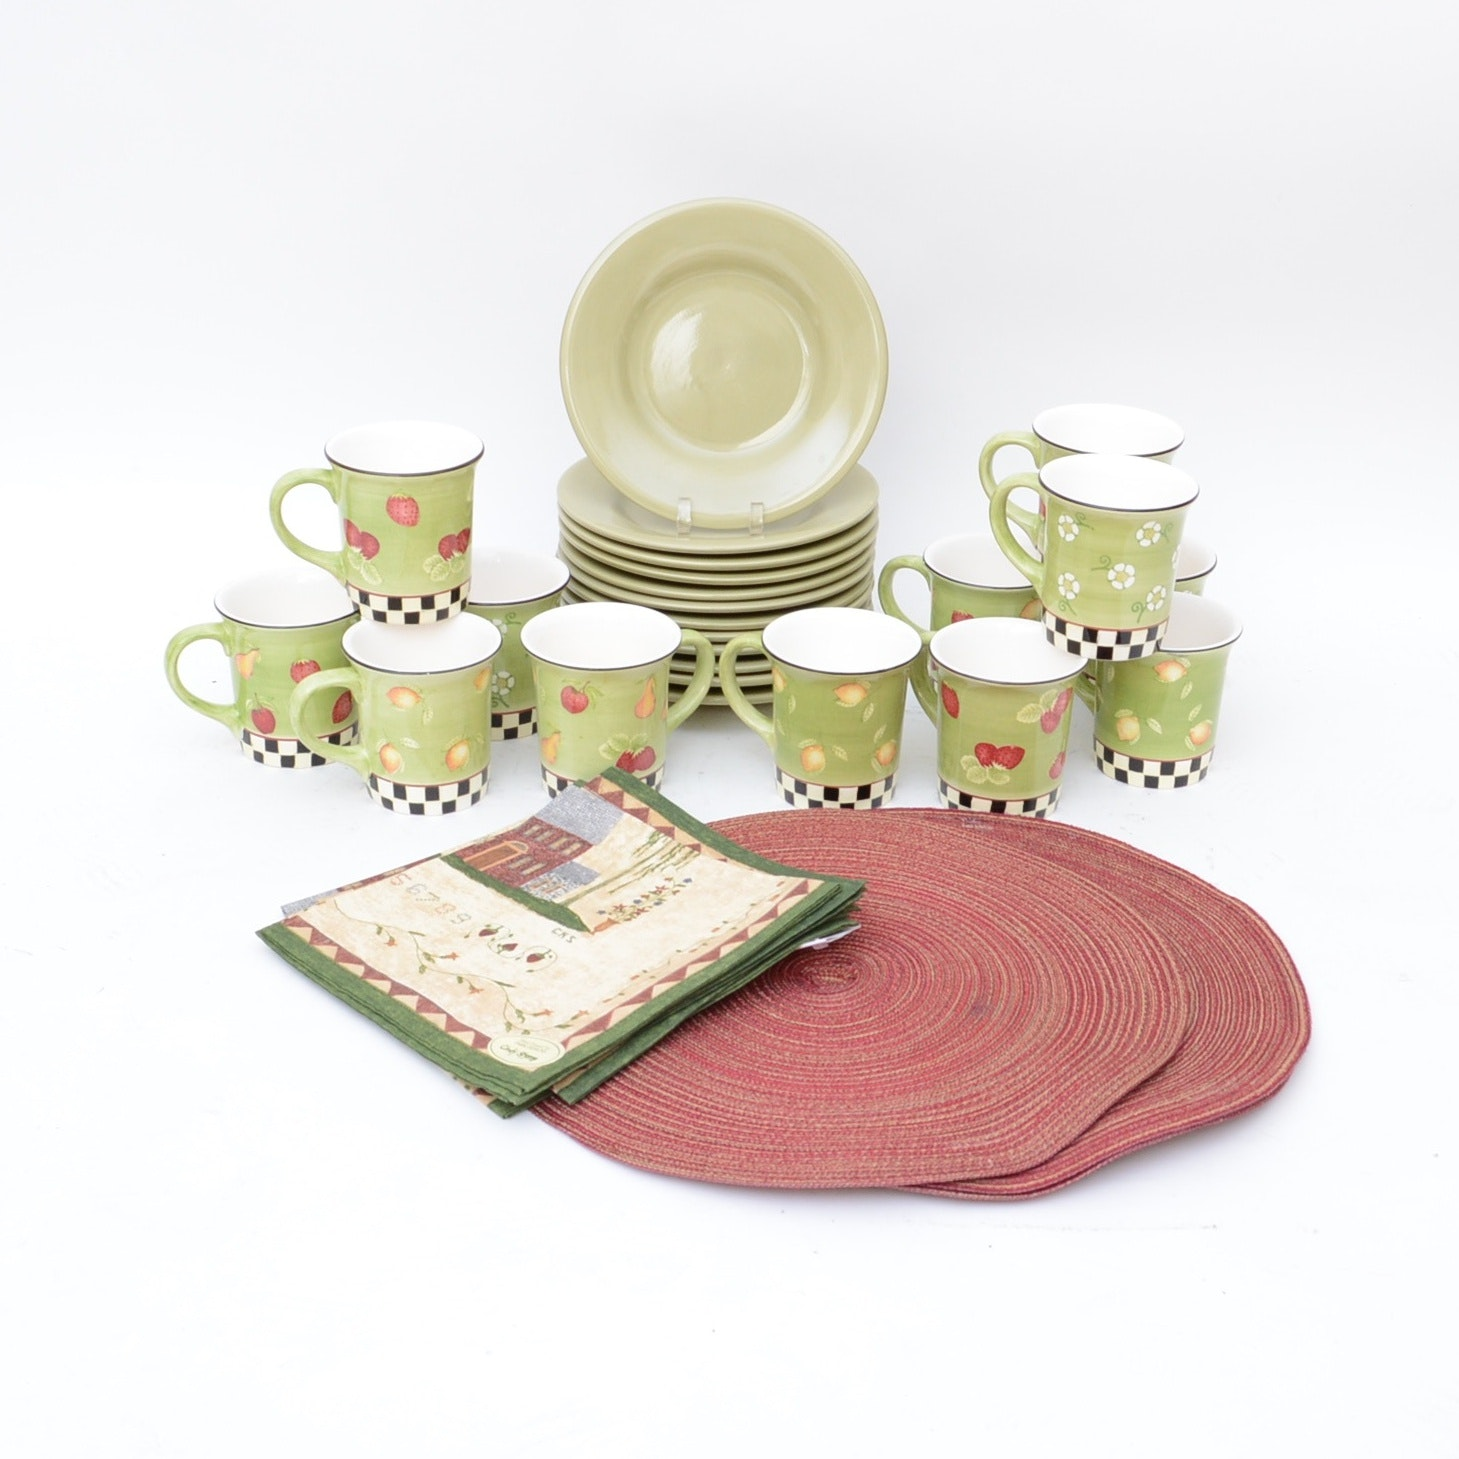 Debbie Mumm Mugs, Tabletops Gallery Plates, And Table Linens ...